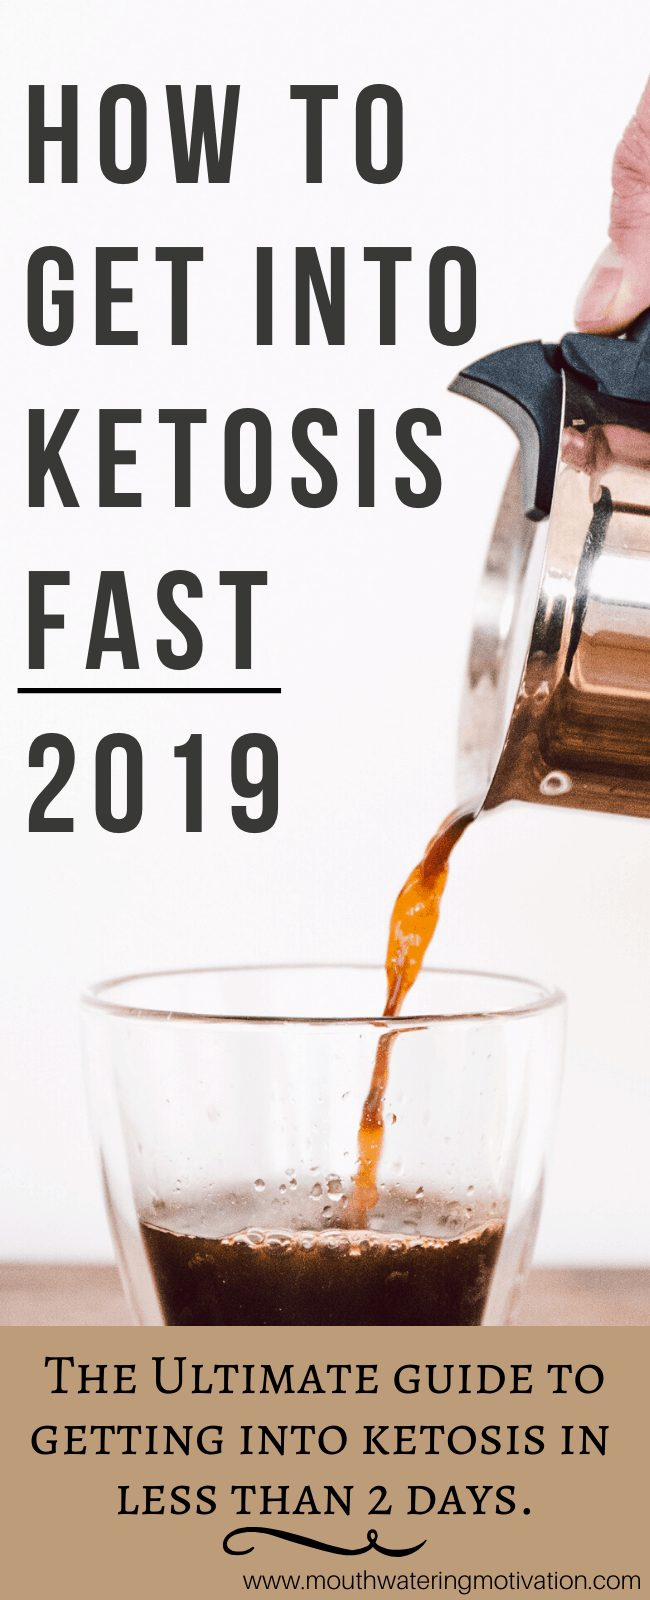 How to Get Into Ketosis FAST 2019